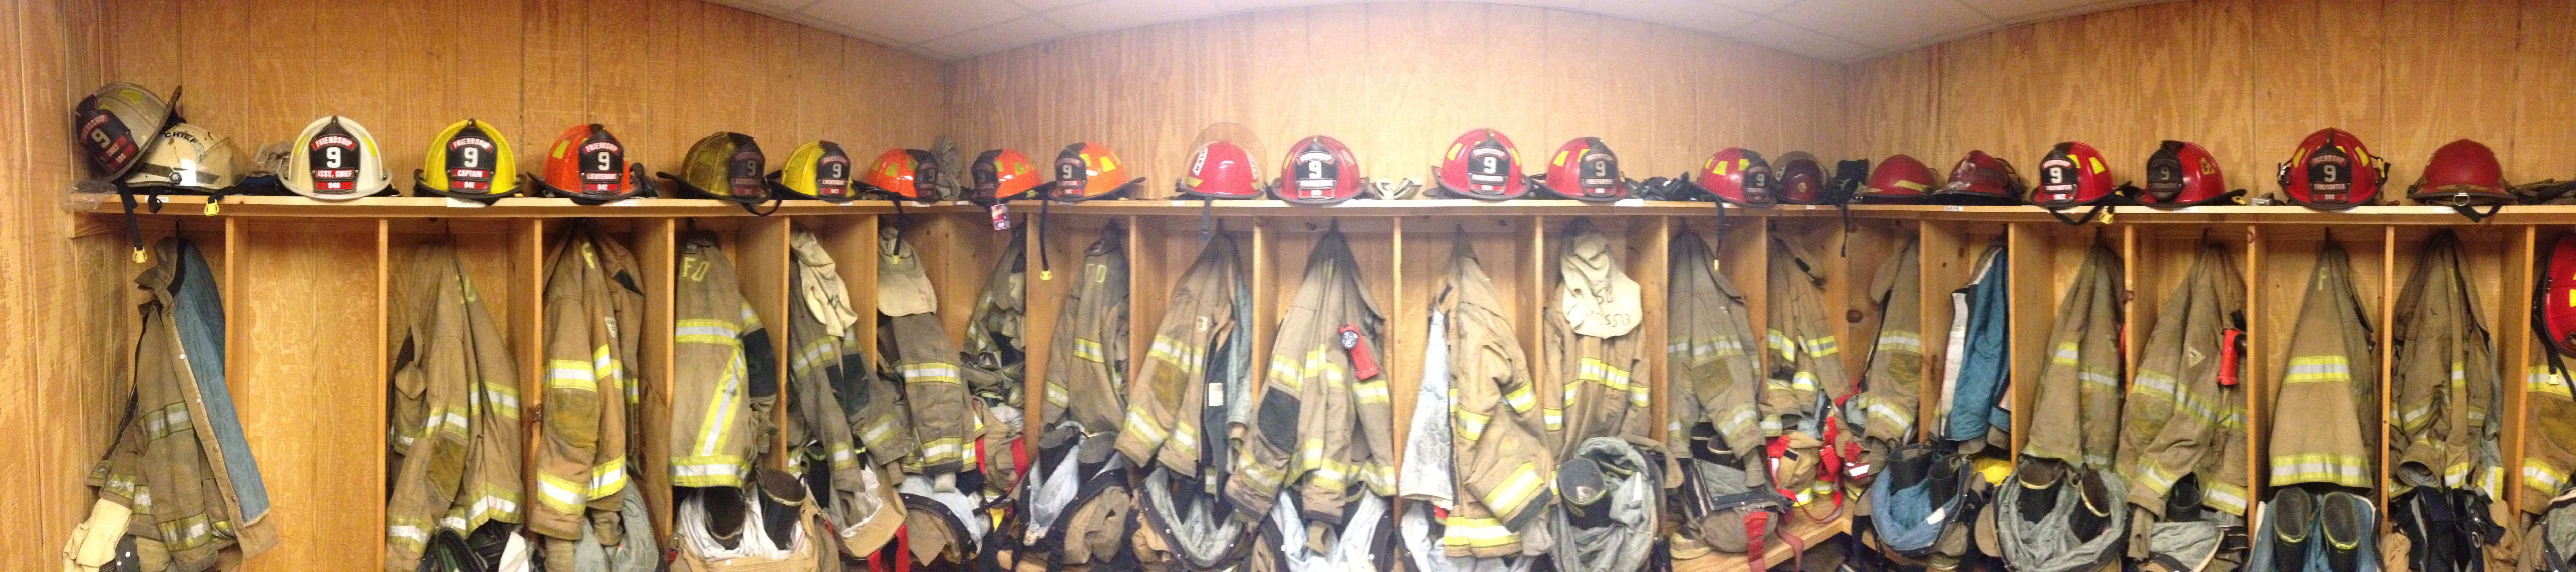 Turnout Gear Room